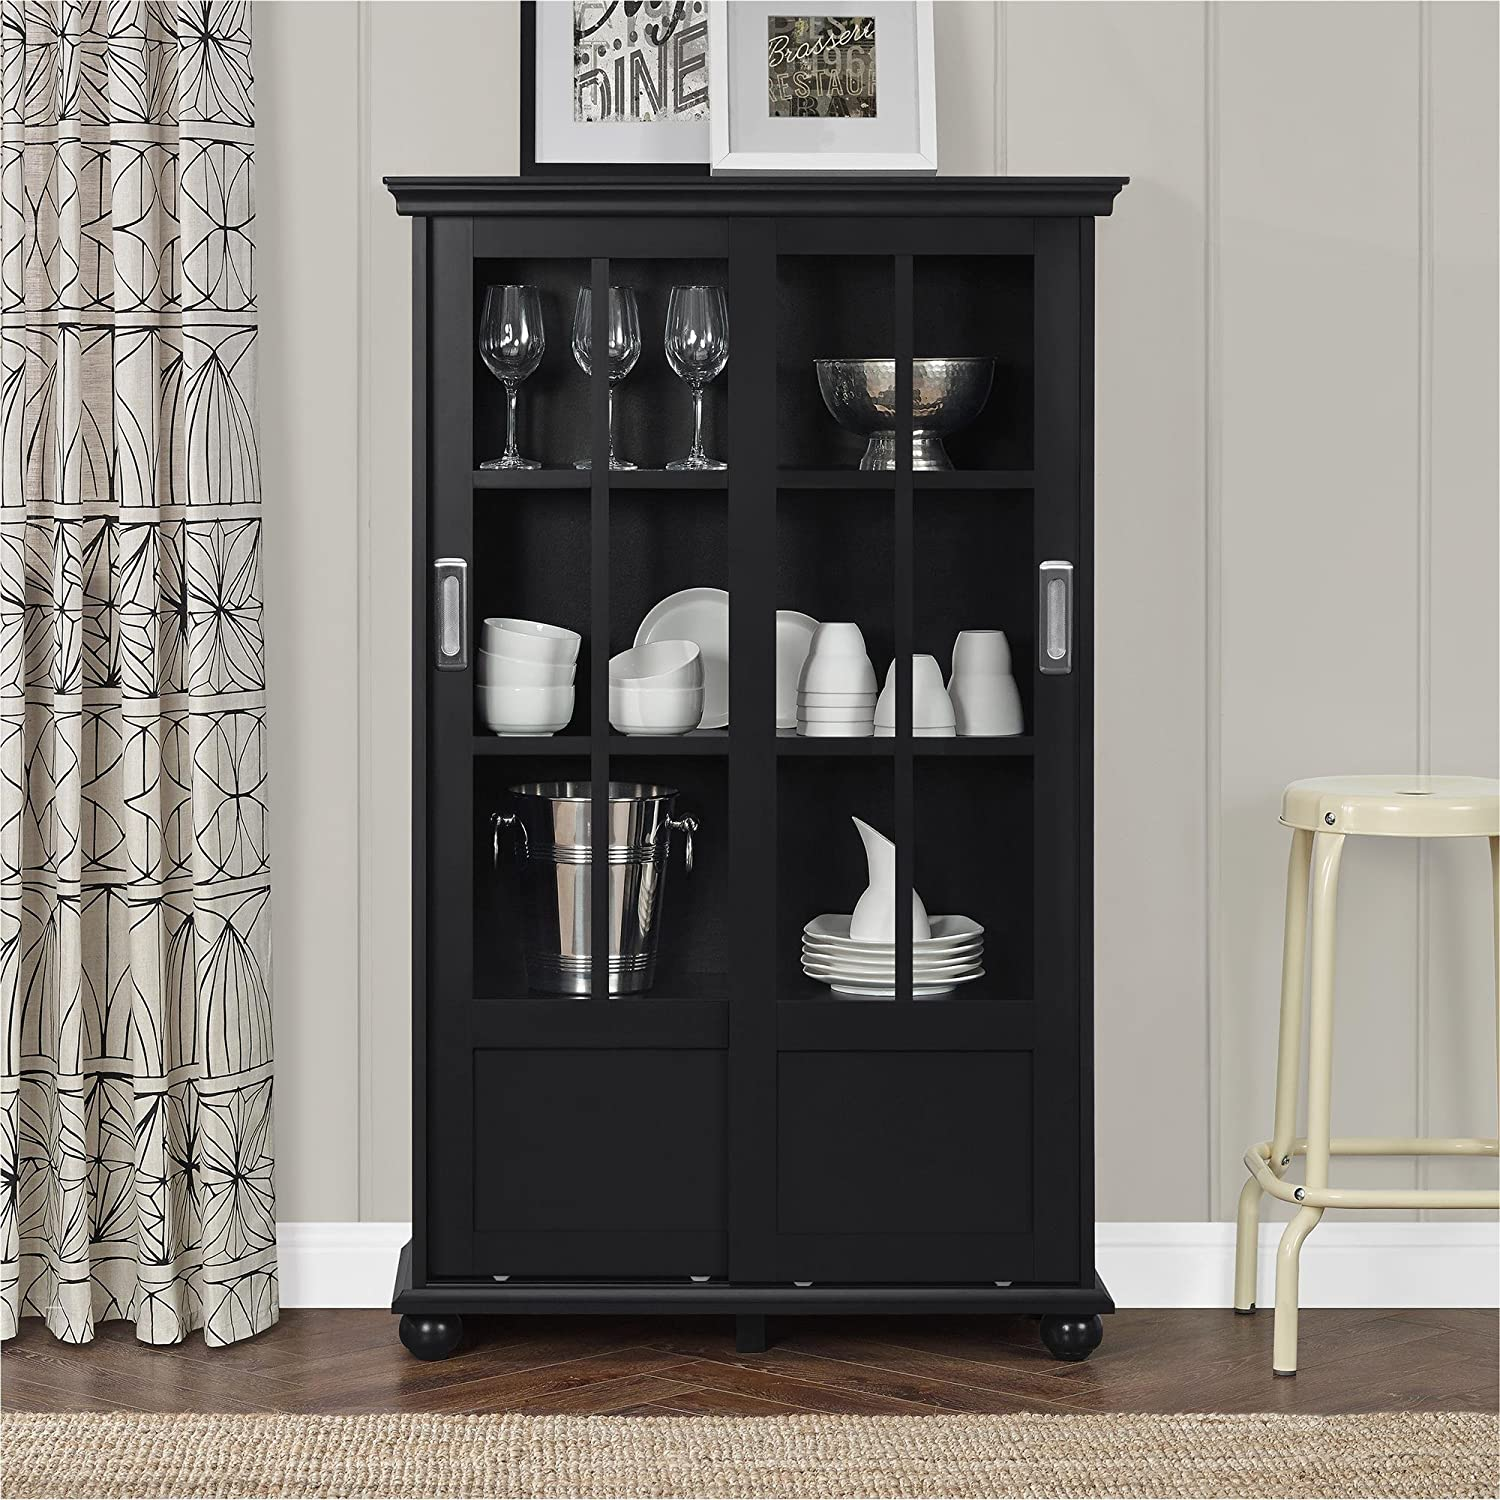 Amazon: Altra Furniture Altra Aaron Lane Bookcase With Sliding Glass  Doors, Black: Kitchen & Dining